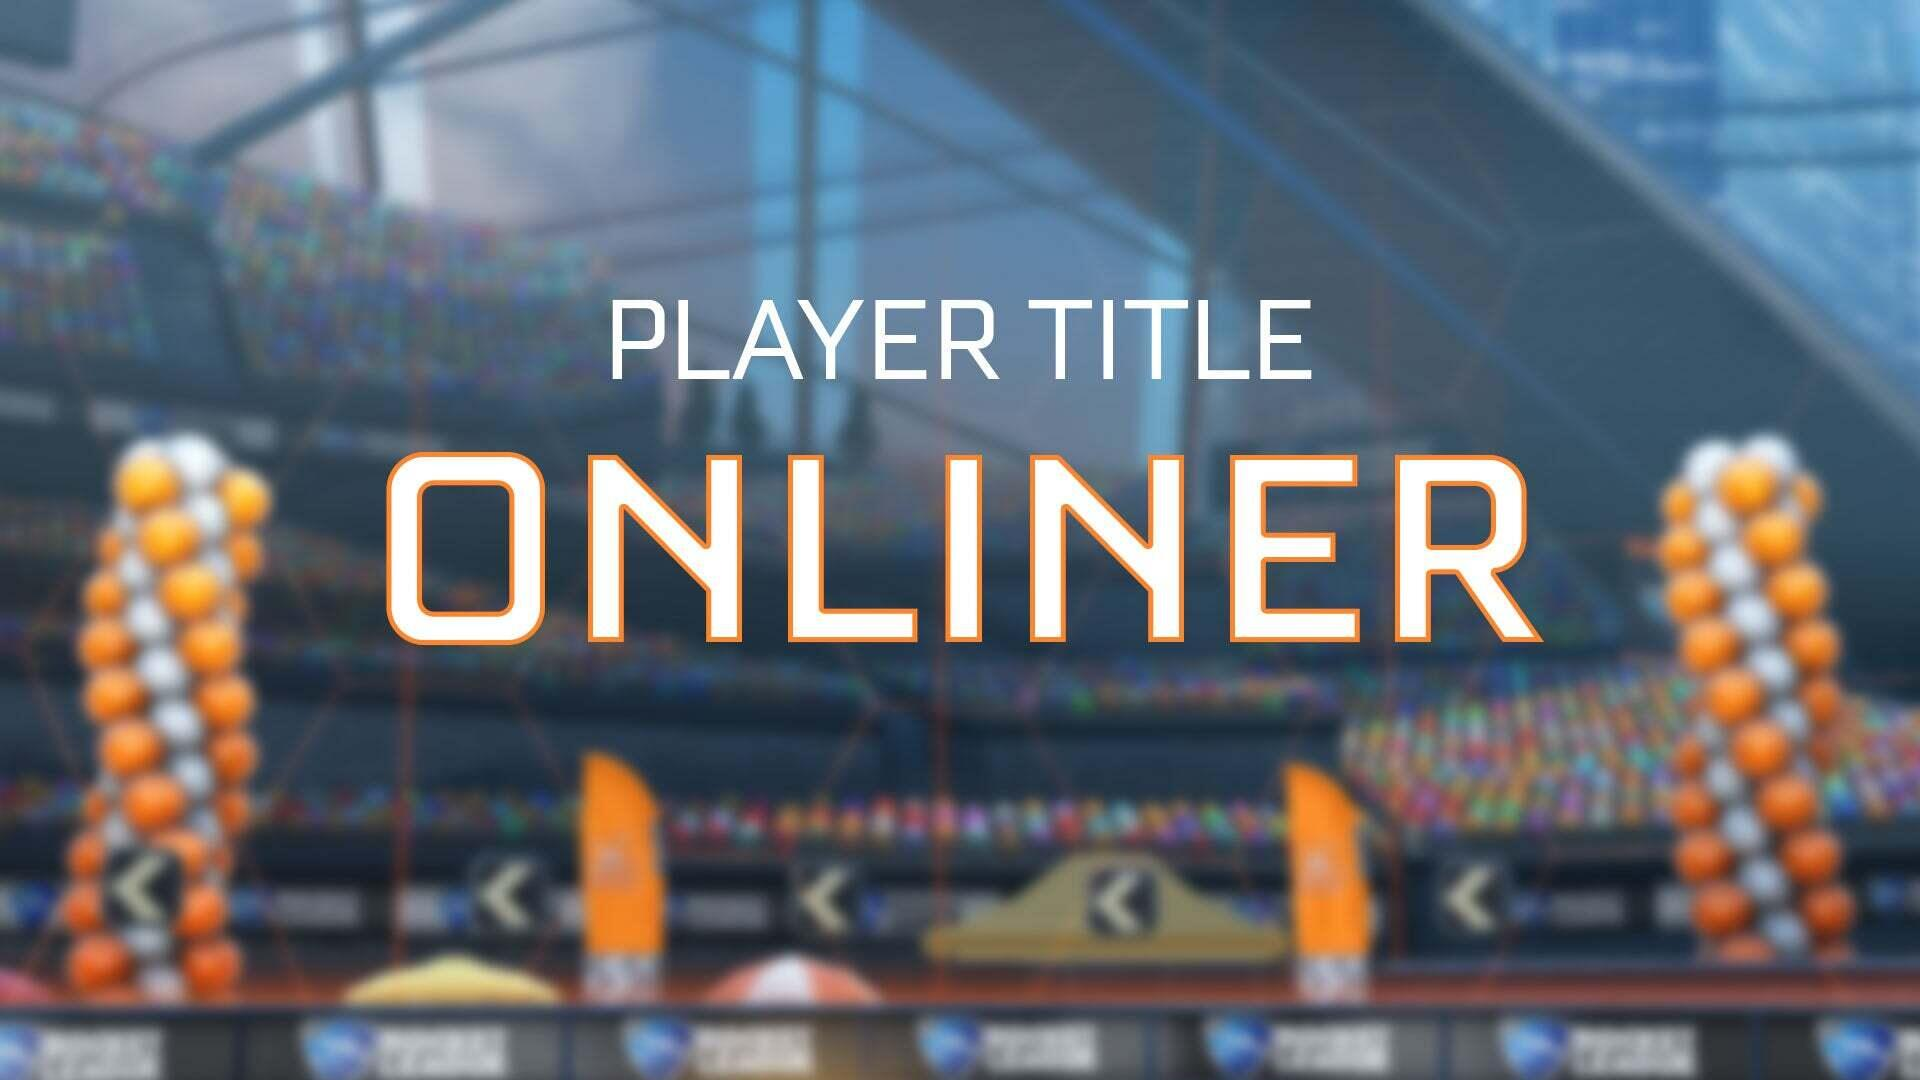 Onliner Player Title